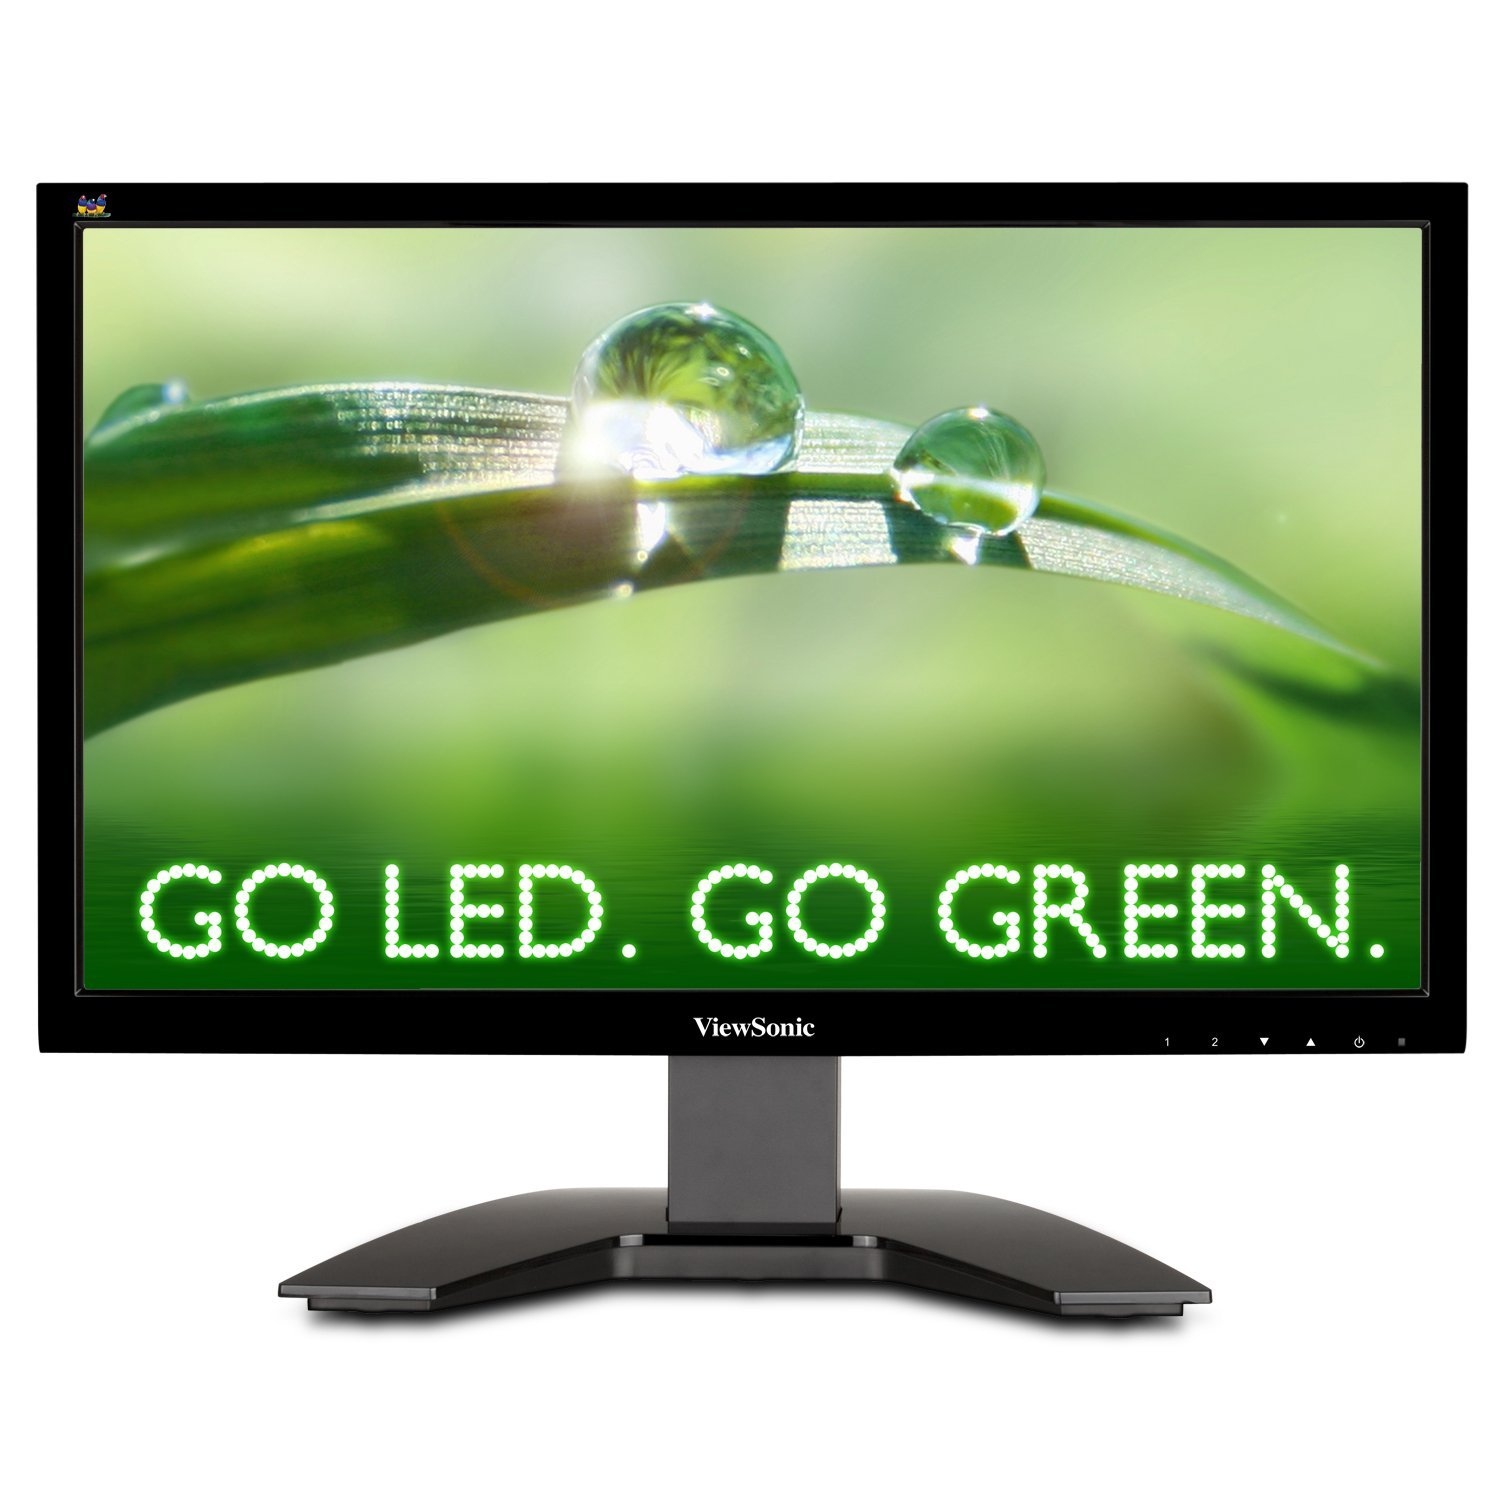 Viewsonic Va1912a Led 19 Inch Lit Monitor